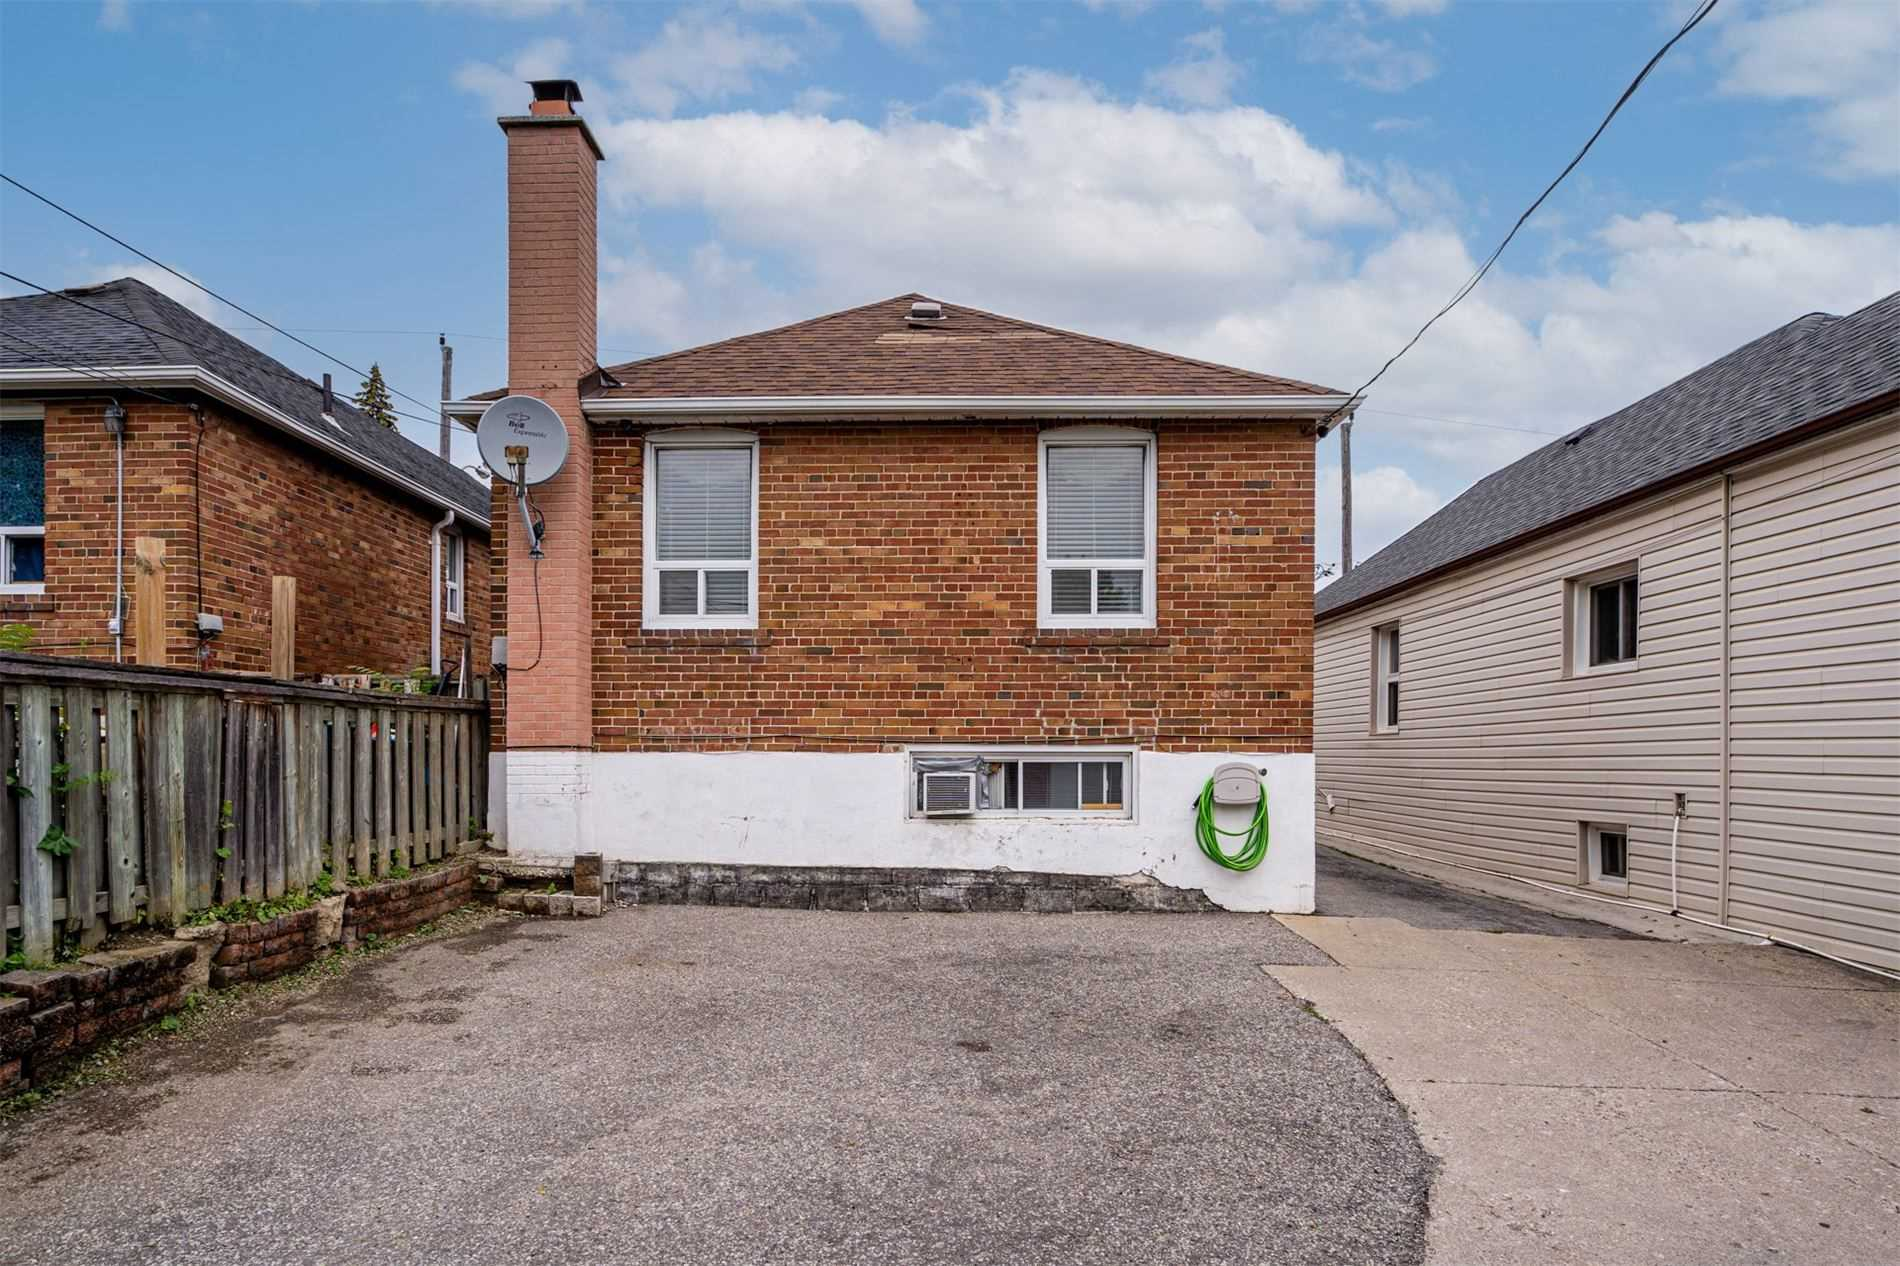 554 Caledonia Rd - Caledonia-Fairbank Detached for sale, 2 Bedrooms (W5305900) - #36